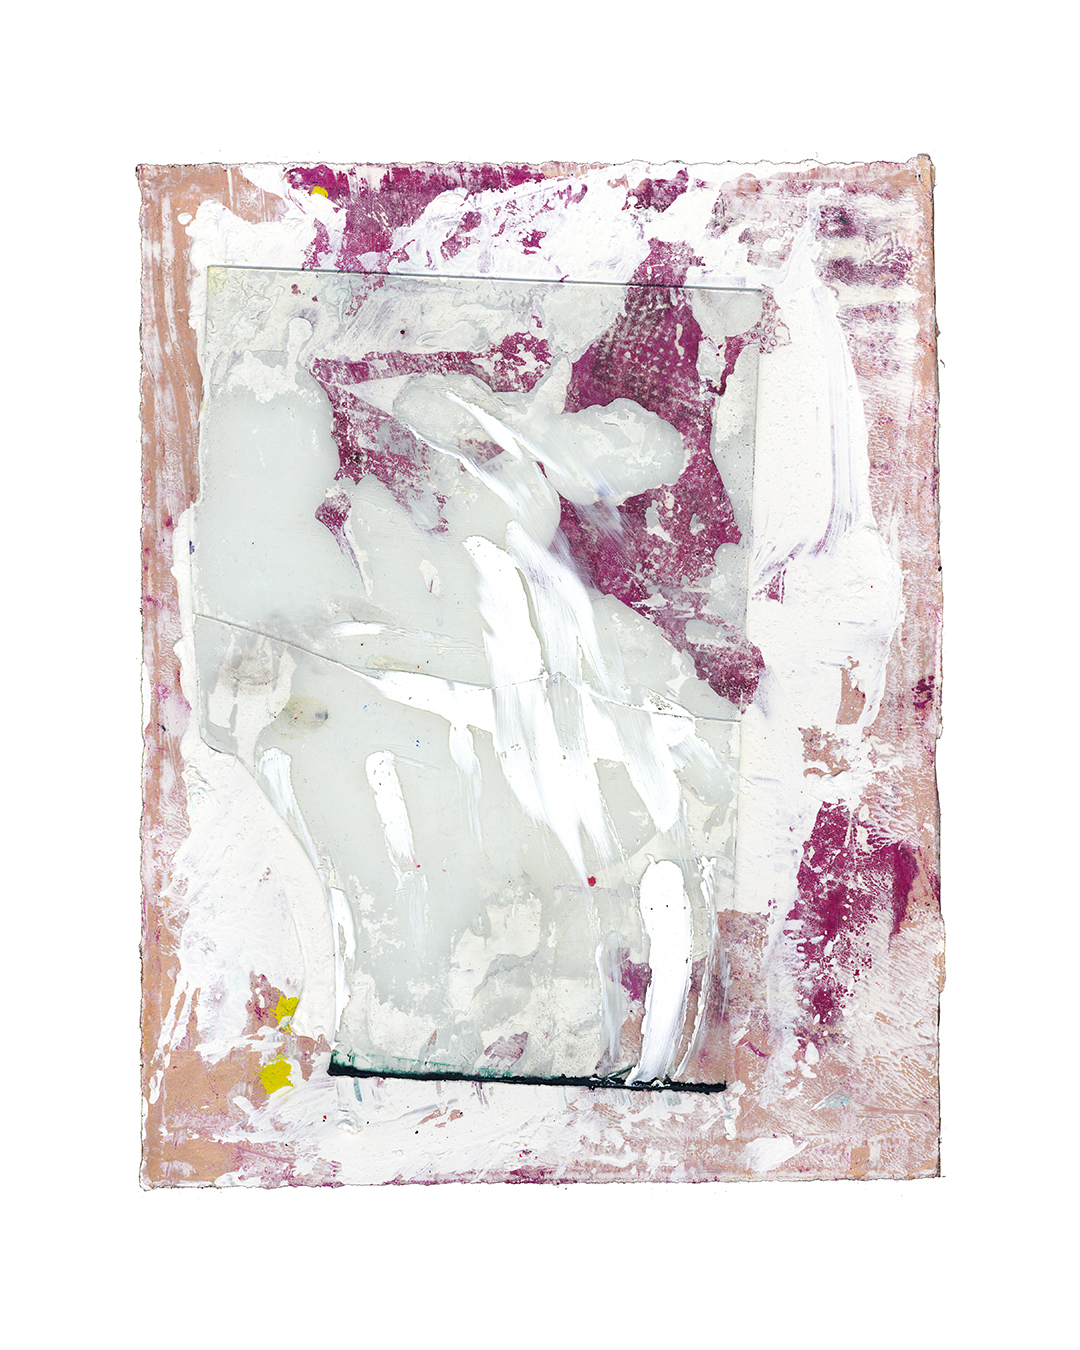 Piet Dieleman, untitled, 2020, painting, glass, oil, tempera, paint, laser woodprint on paper, 380 x 295 mm, €930